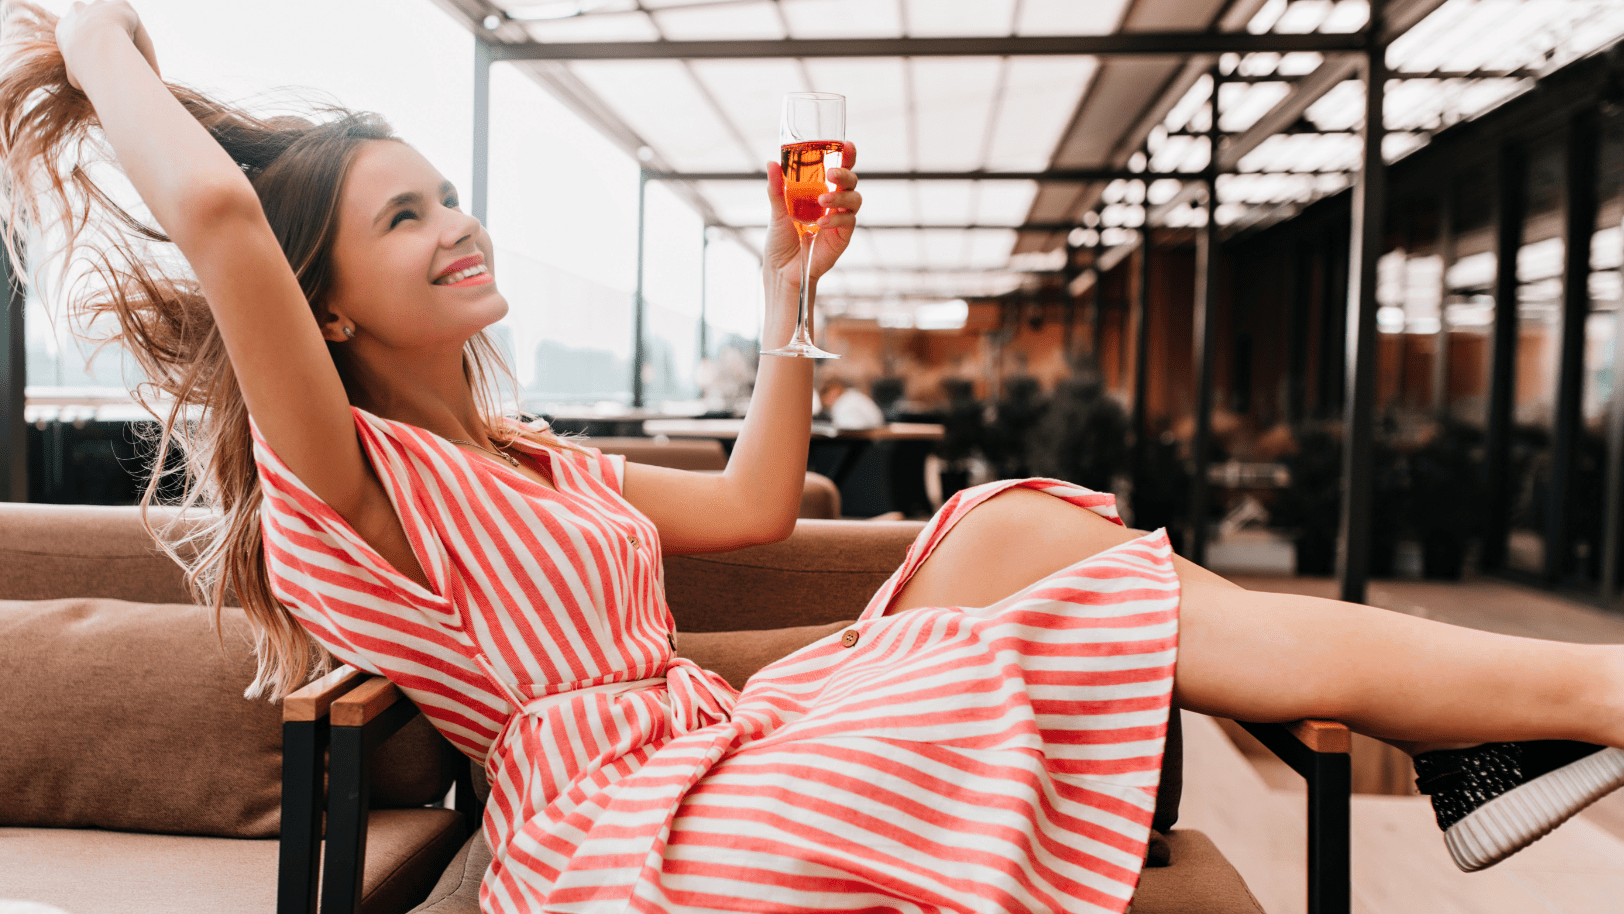 Woman with wine glass posing for photo